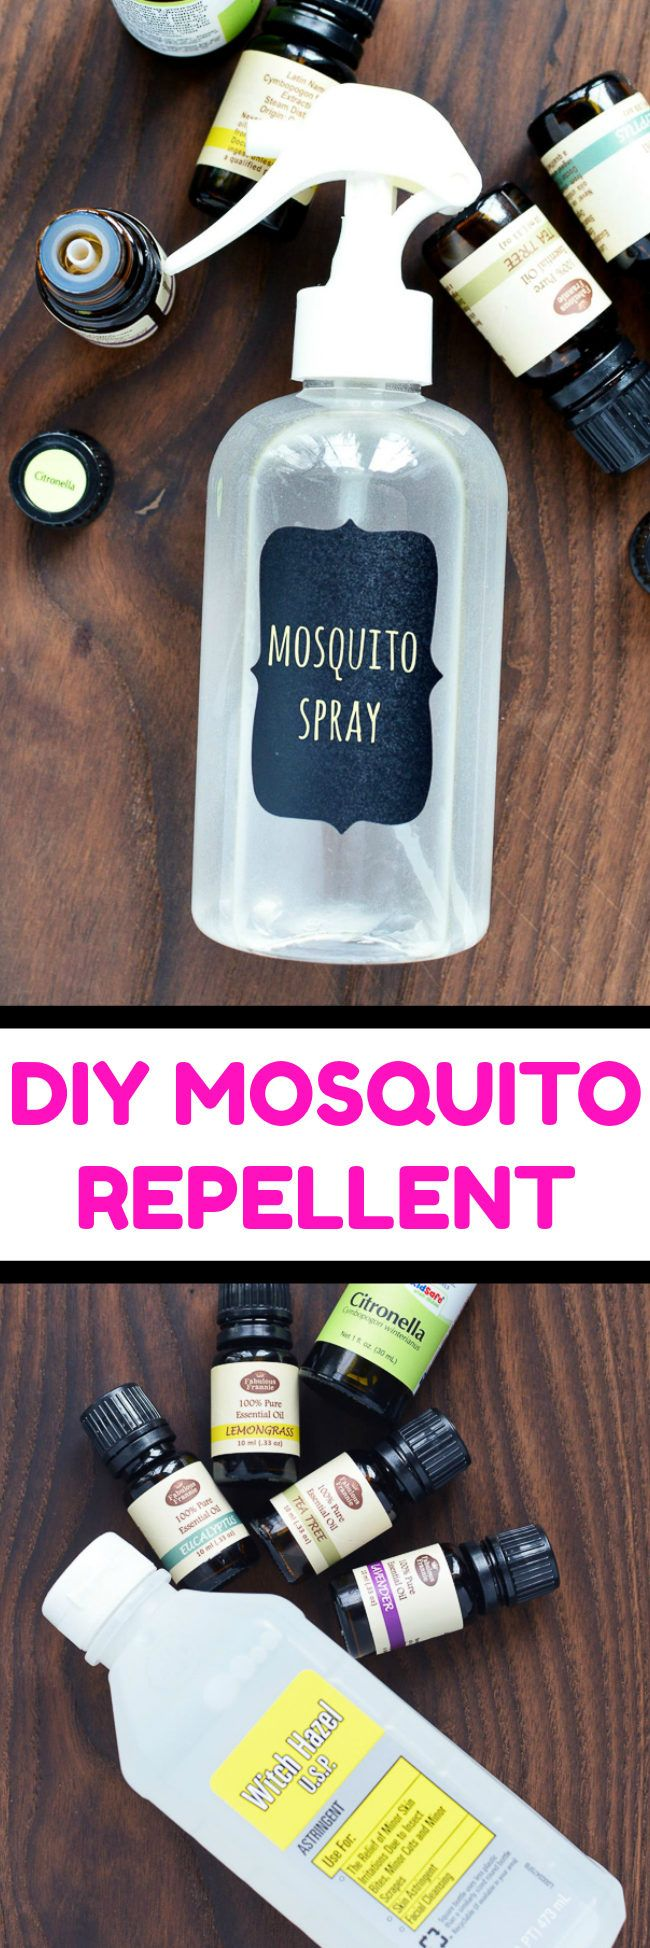 20 natural ways to repel insects insects natural and money hacks